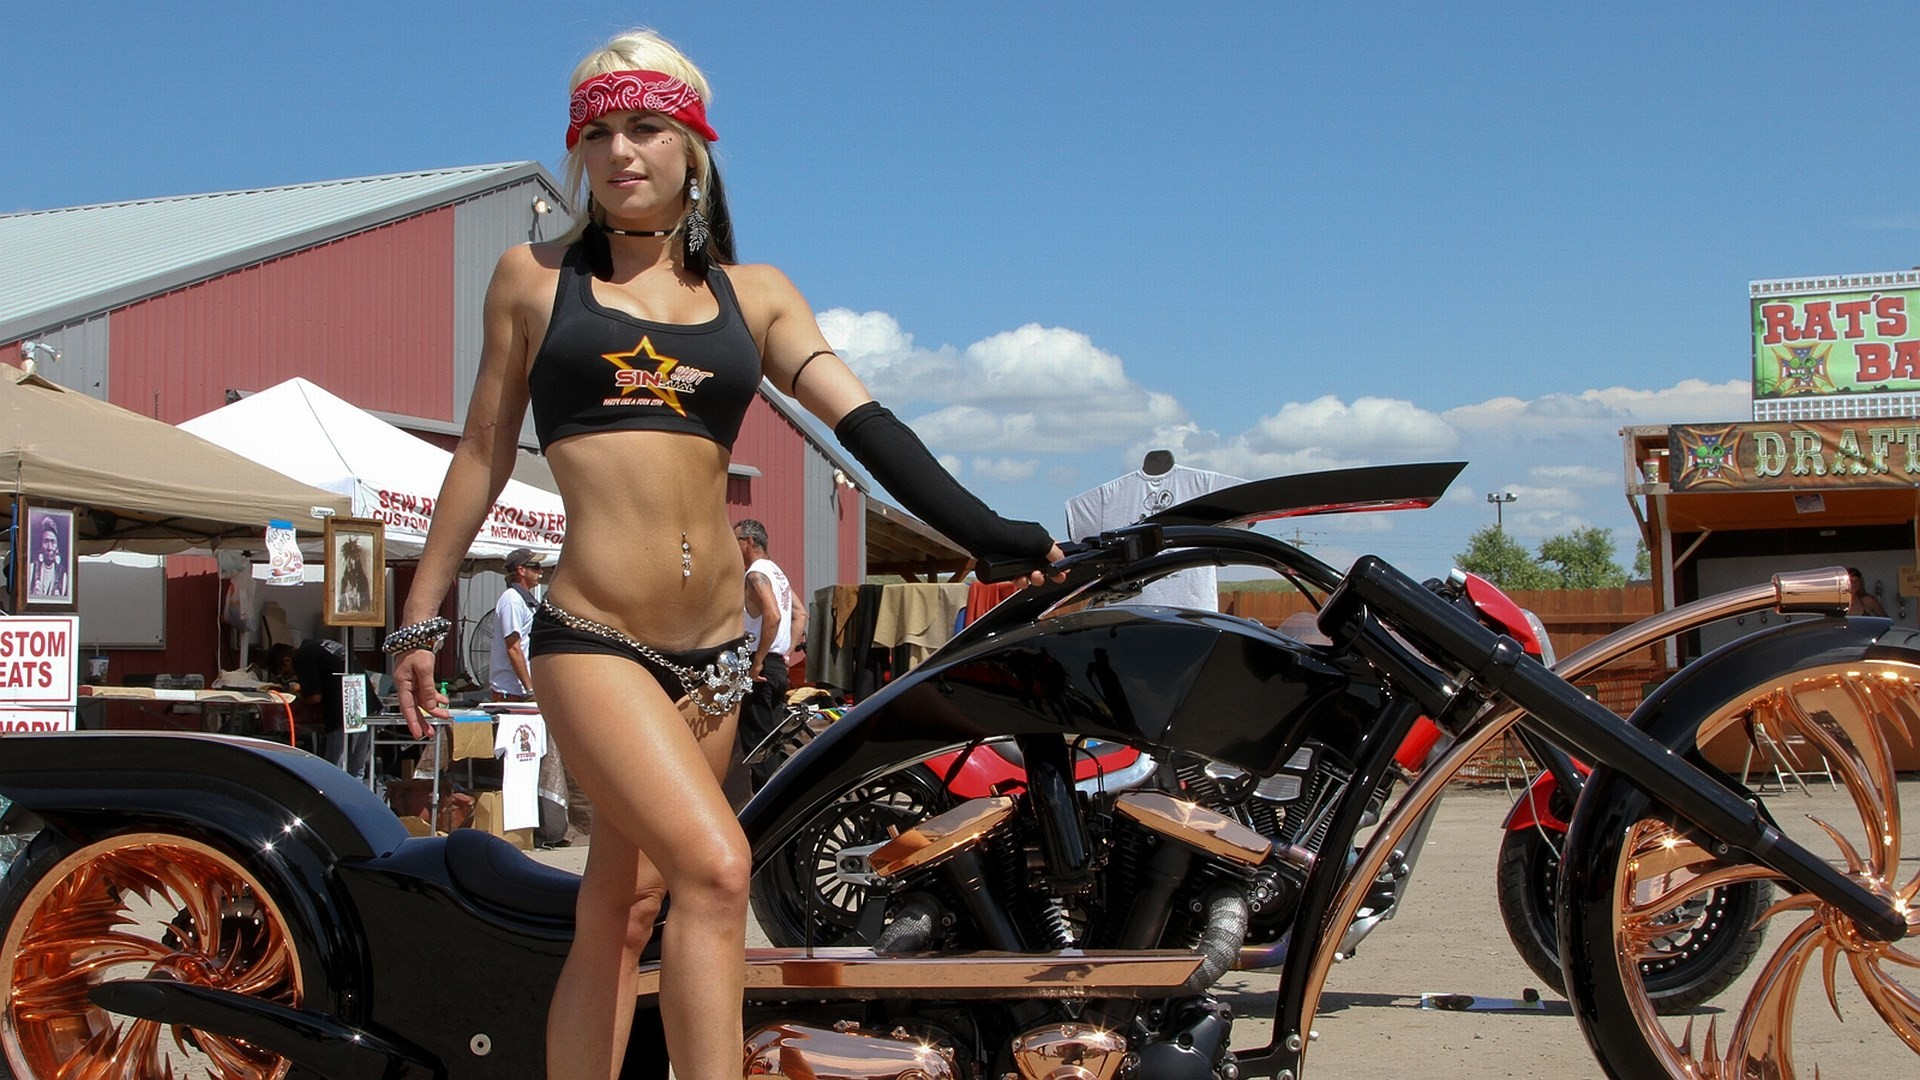 Pictures for Desktop: girls and motorcycles pic by Pratt Bishop (2017-03-